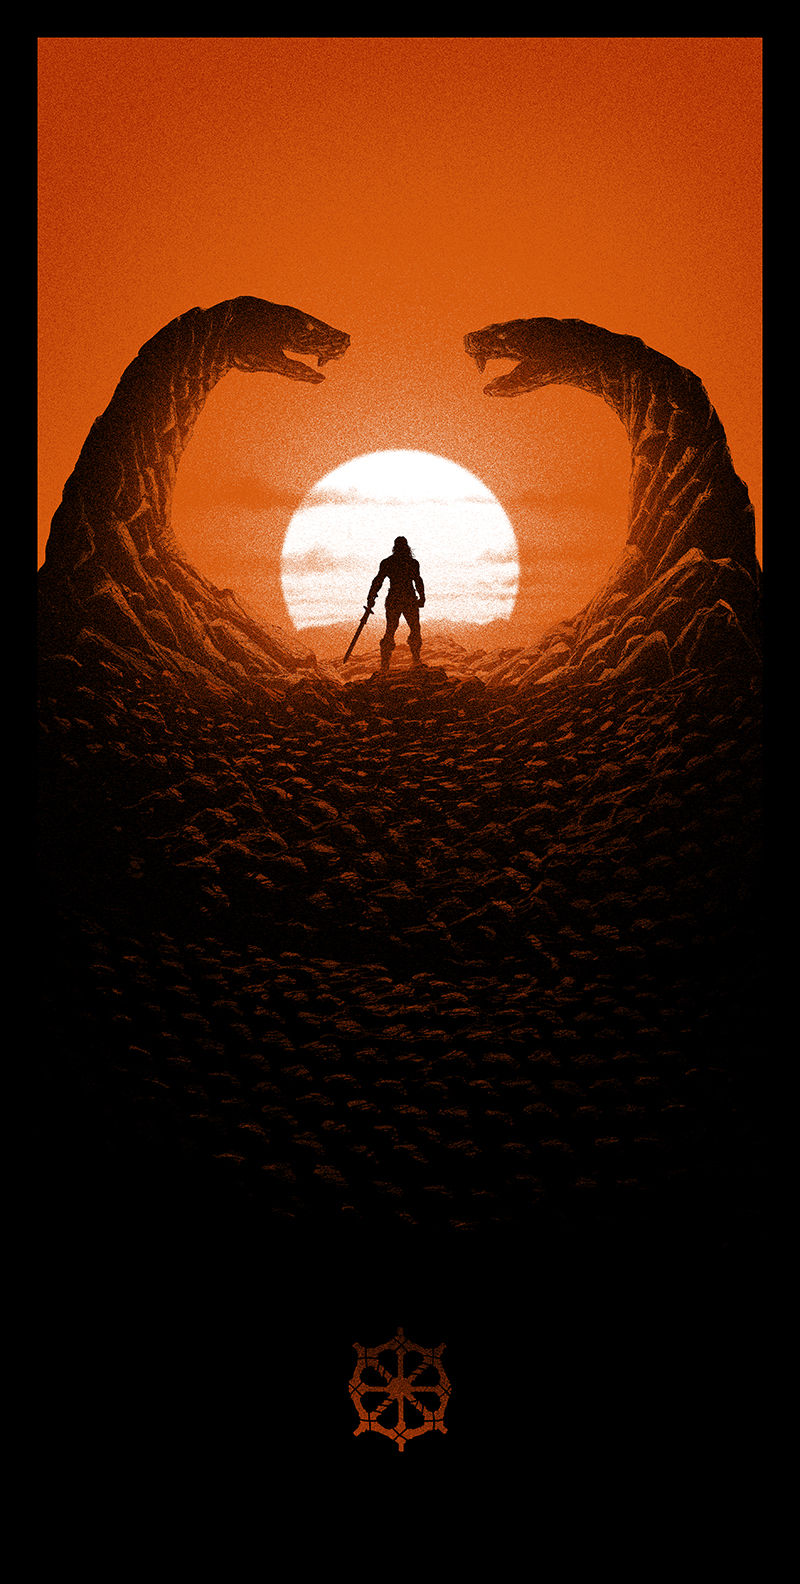 stunning-poster-art-for-iconic-movies-by-matt-fergusonMarko-Manev-Conan.jpg